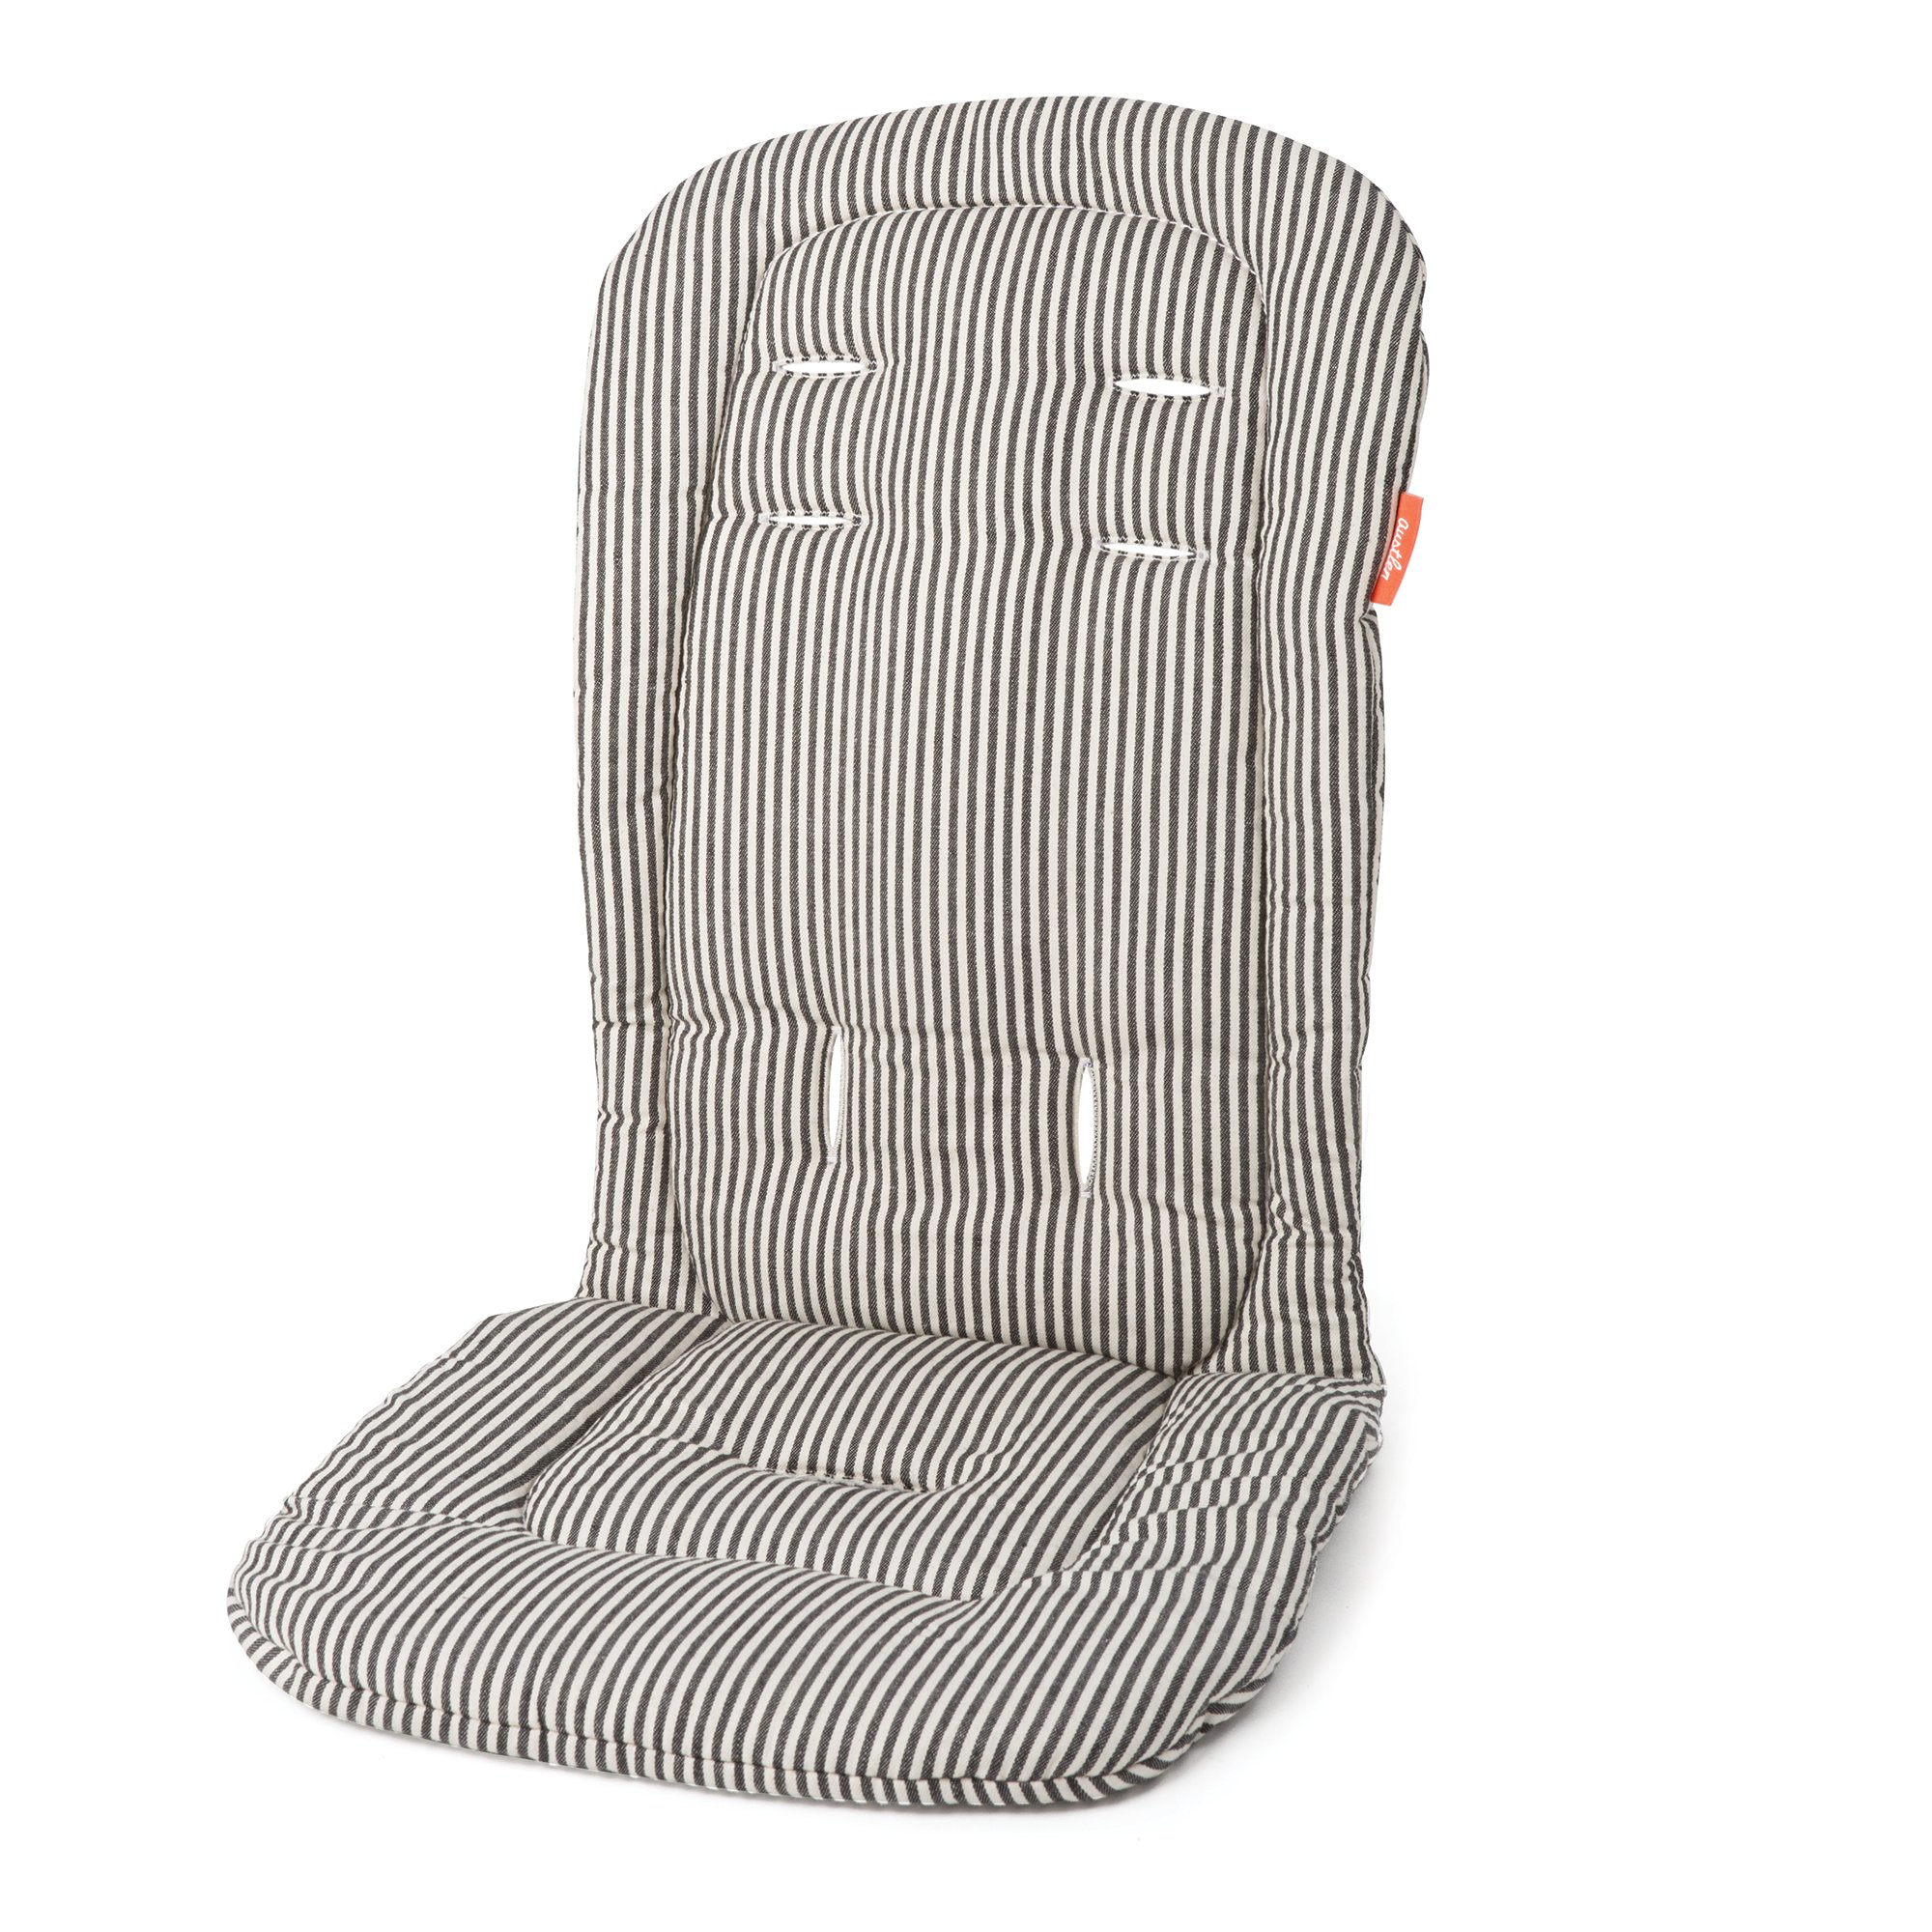 Austlen Entourage Second Seat Liner: Washable Baby Stroller Accessories Cushion - Black Striped